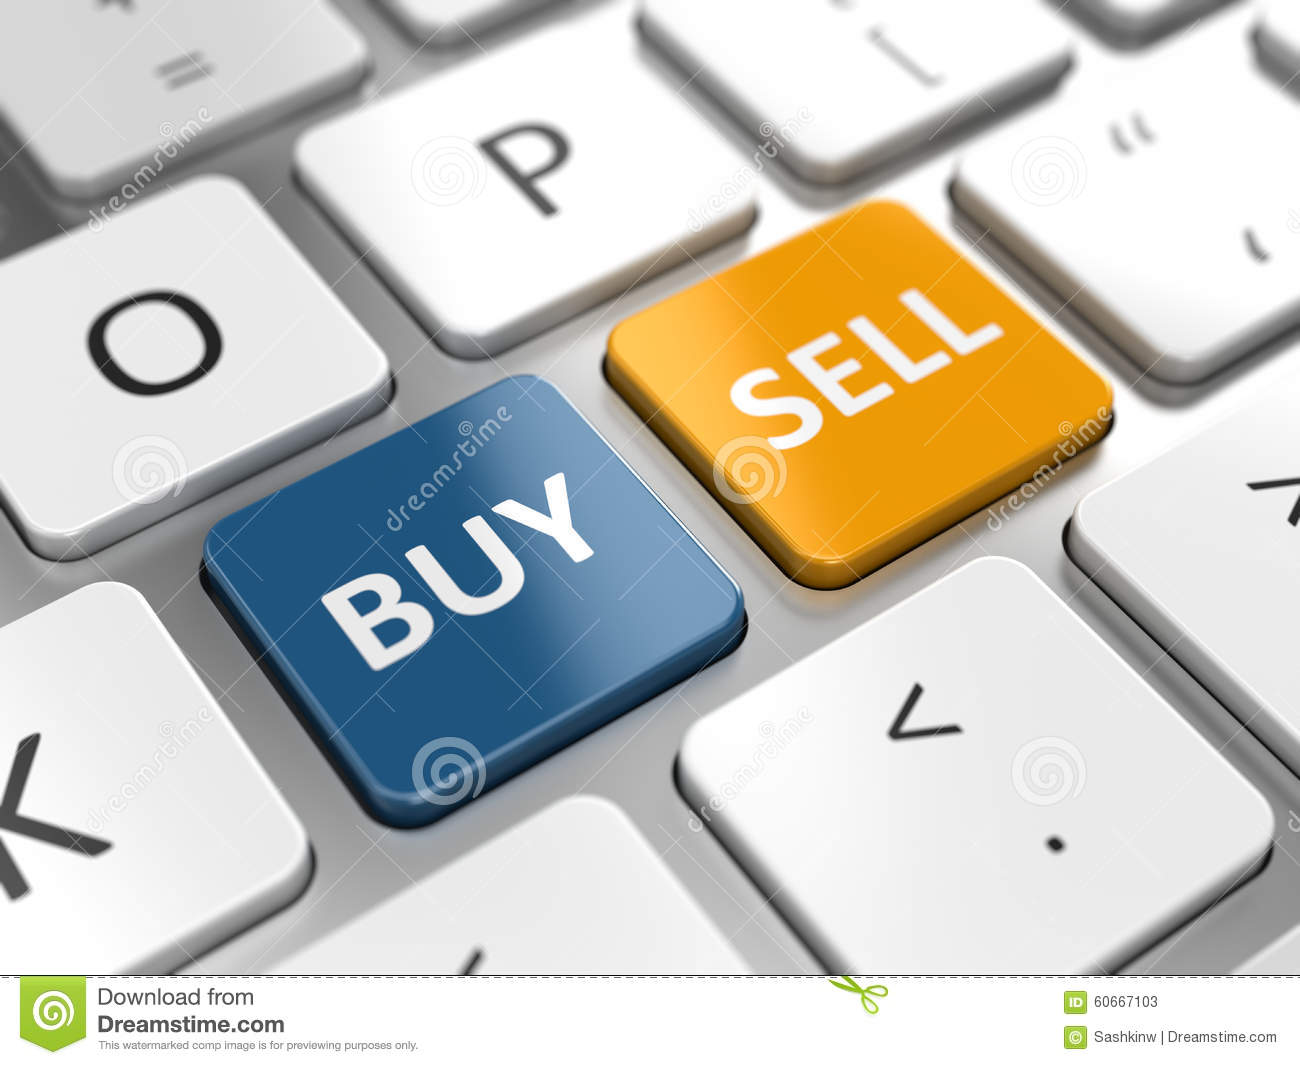 Business trade or stocks online concept - buy and sell keys.